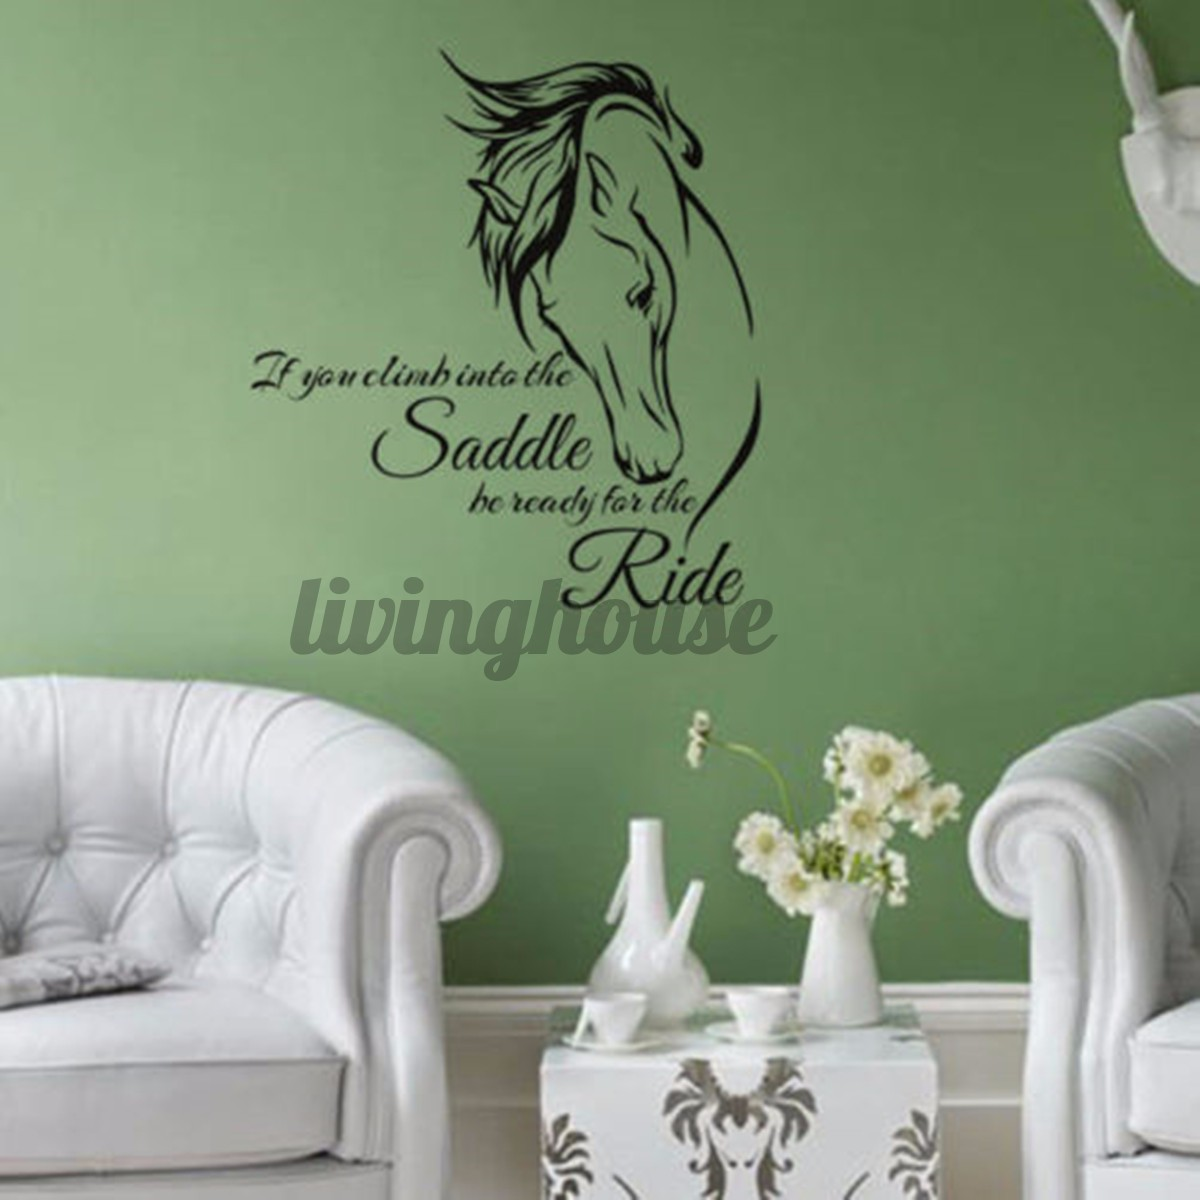 59 64cm Horse Head Wall Decal Stickers Quote Saddle Ride Living Room Wall Decals Sayings Shopee Indonesia